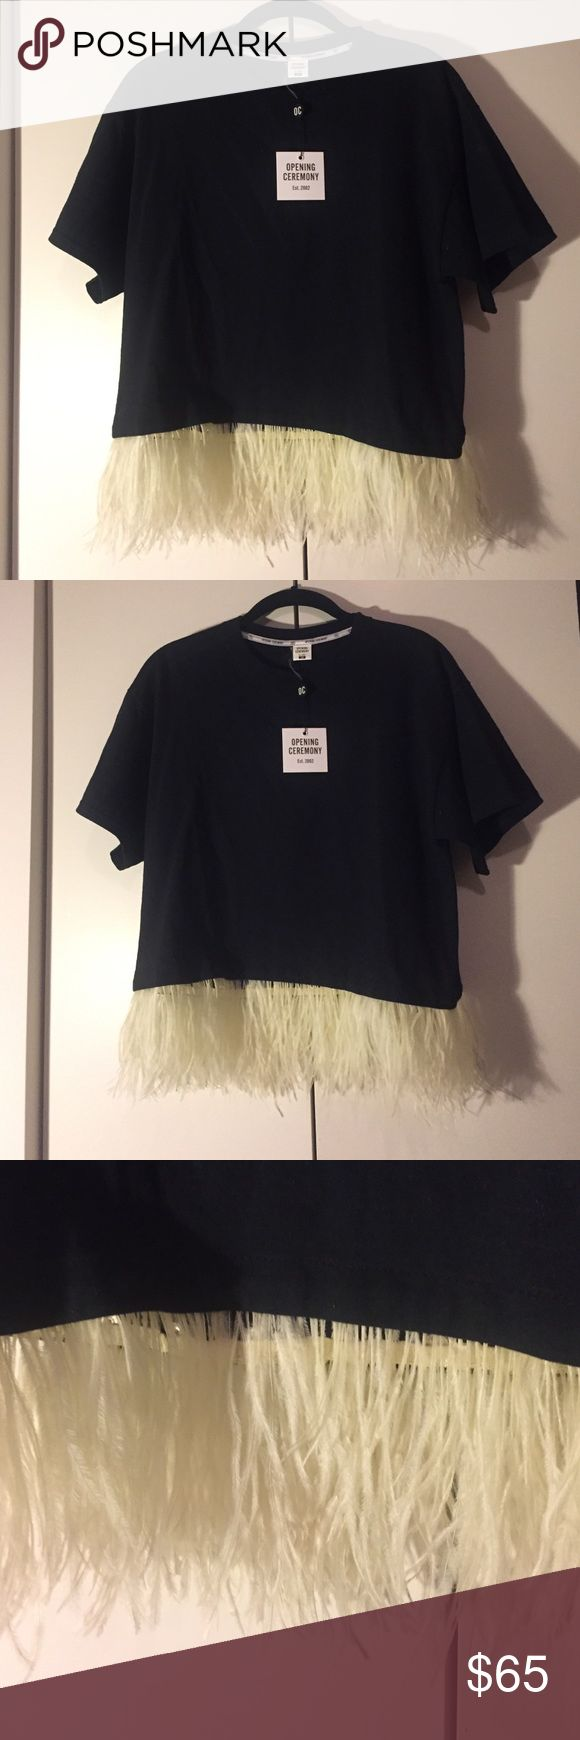 Black t-shirt with detachable feathers Black cotton opening ceremony t-shirt with white detachable feather lining bottom of shirt. New, never worn, with tags! Runs large, fits truly like a small Opening Ceremony Tops Tees - Short Sleeve